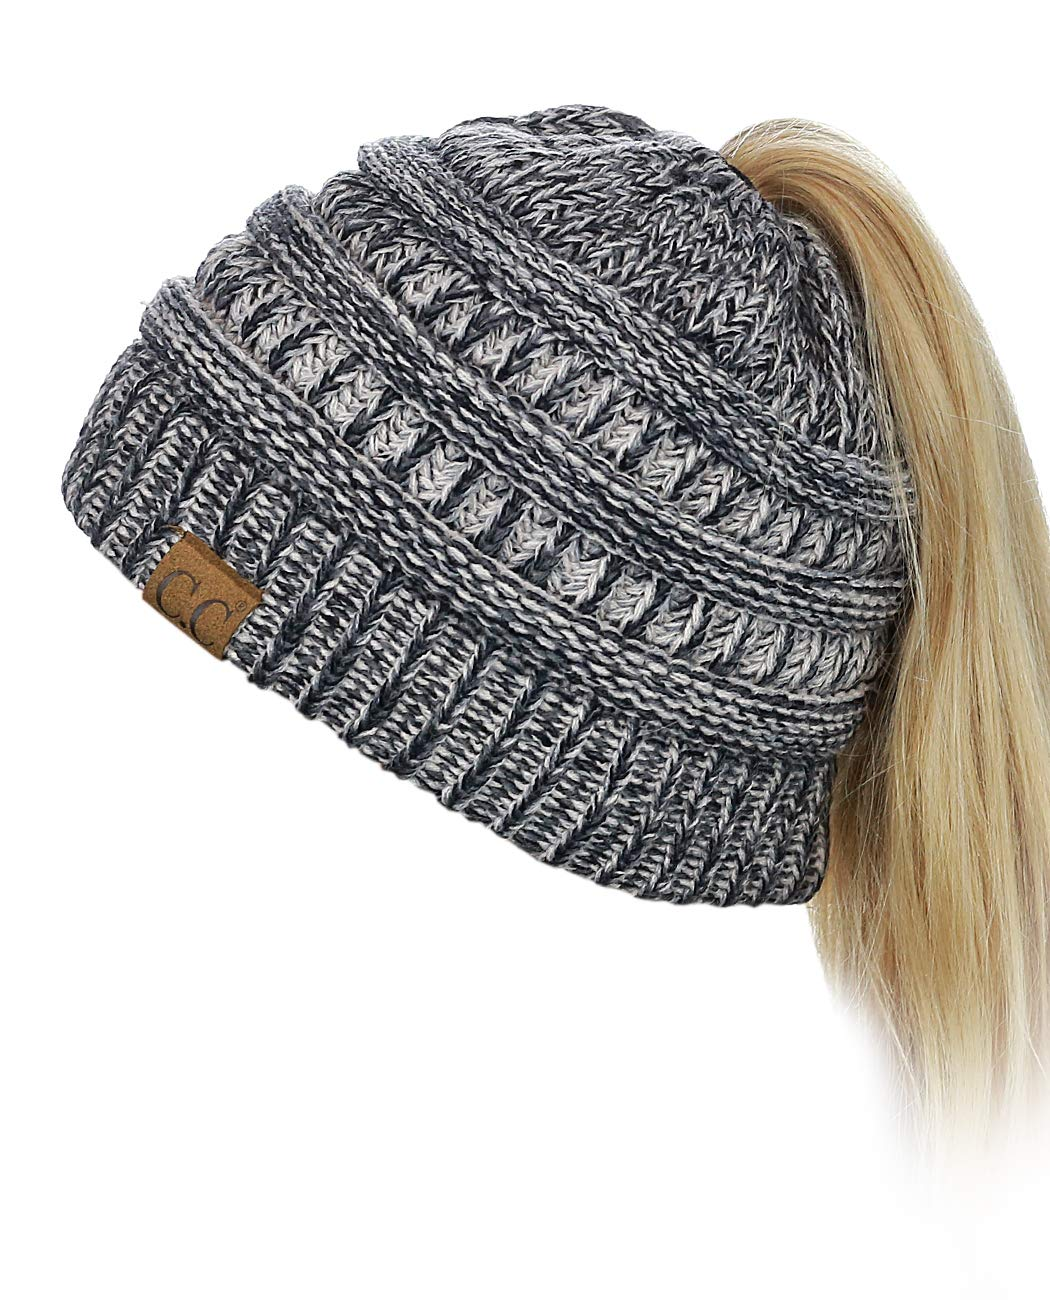 C.C BeanieTail Soft Stretch Cable Knit Messy High Bun Ponytail Beanie Hat, 3 Tone Gray